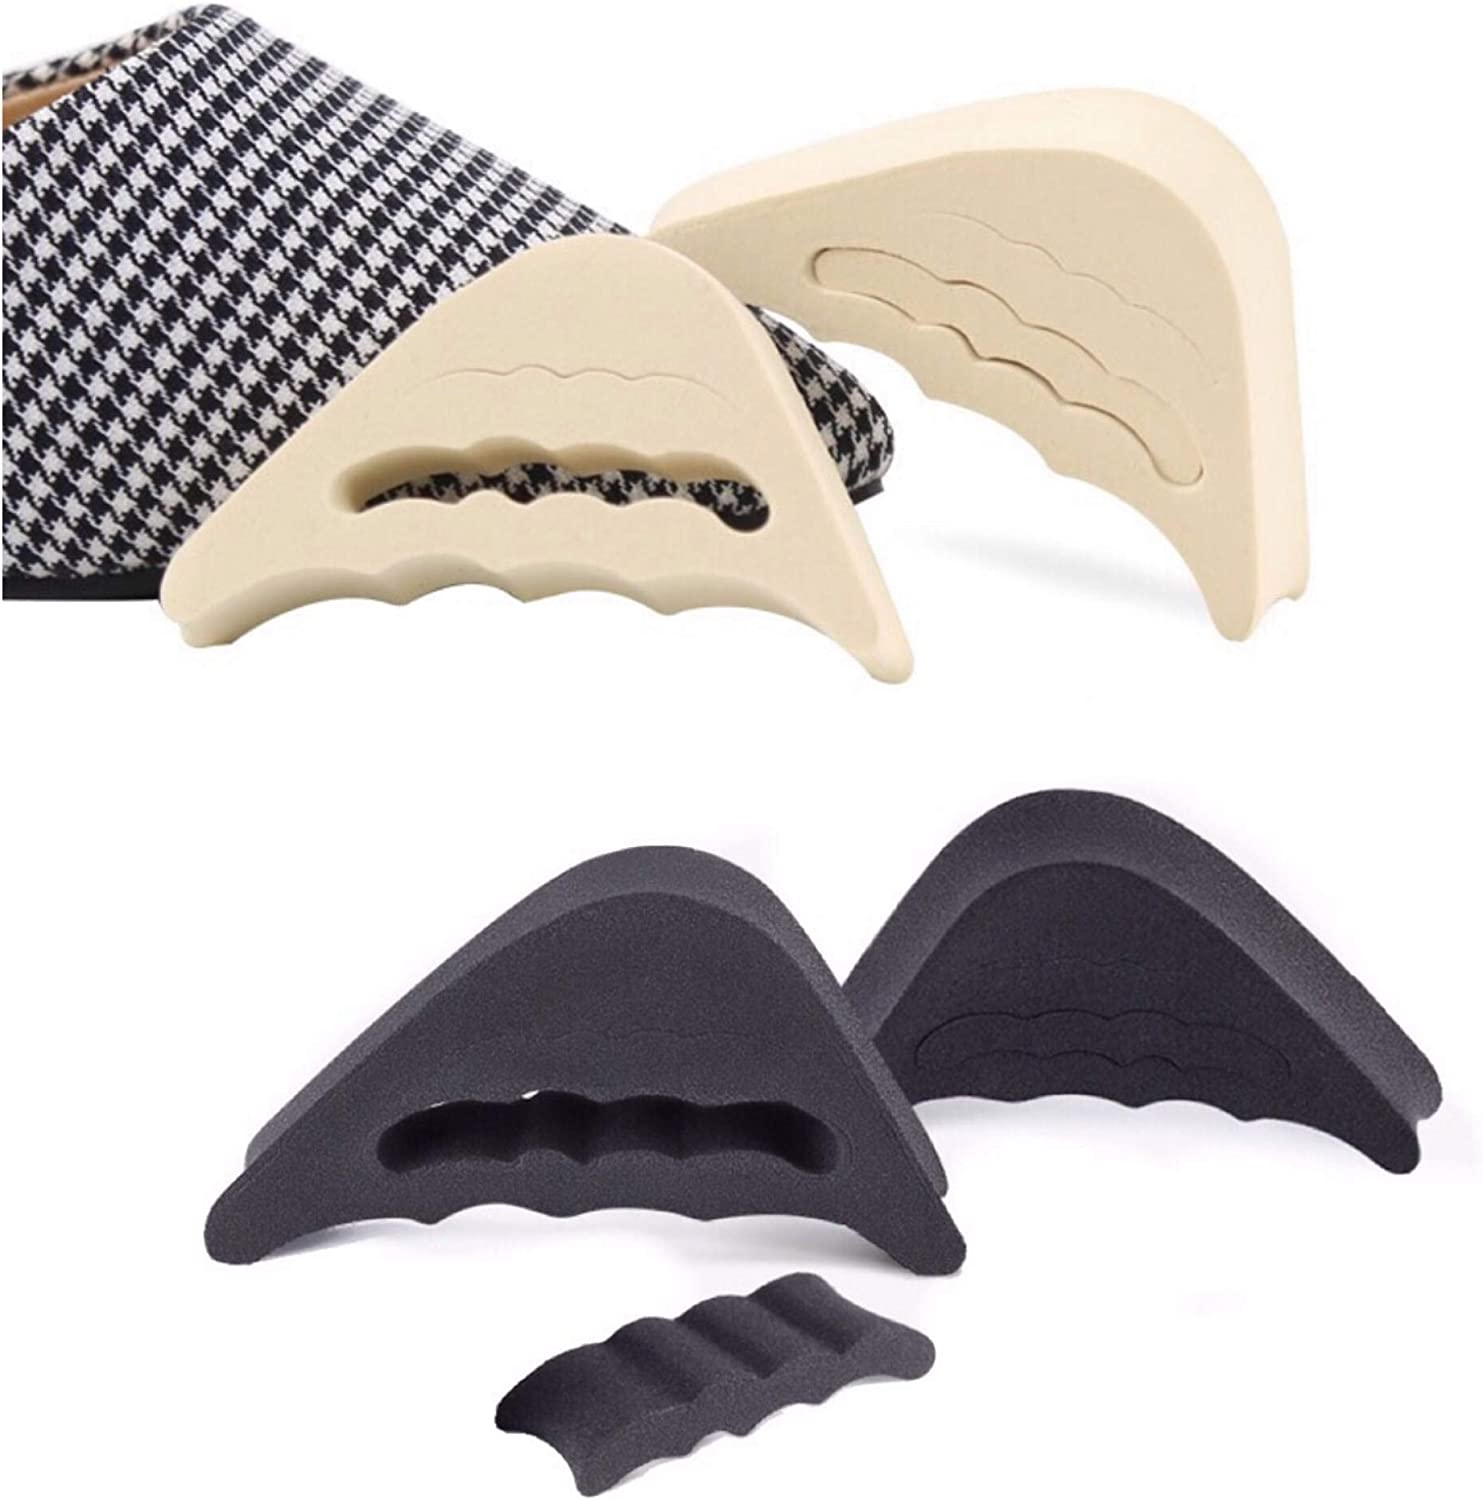 CaserBay Value Pack, EVA Shoe Filler, Inserts, Improve Shoes Slightly Too Big, for Men & Women, Kids, Pumps, Flats, Sneakers【Style A, Nude & Black】